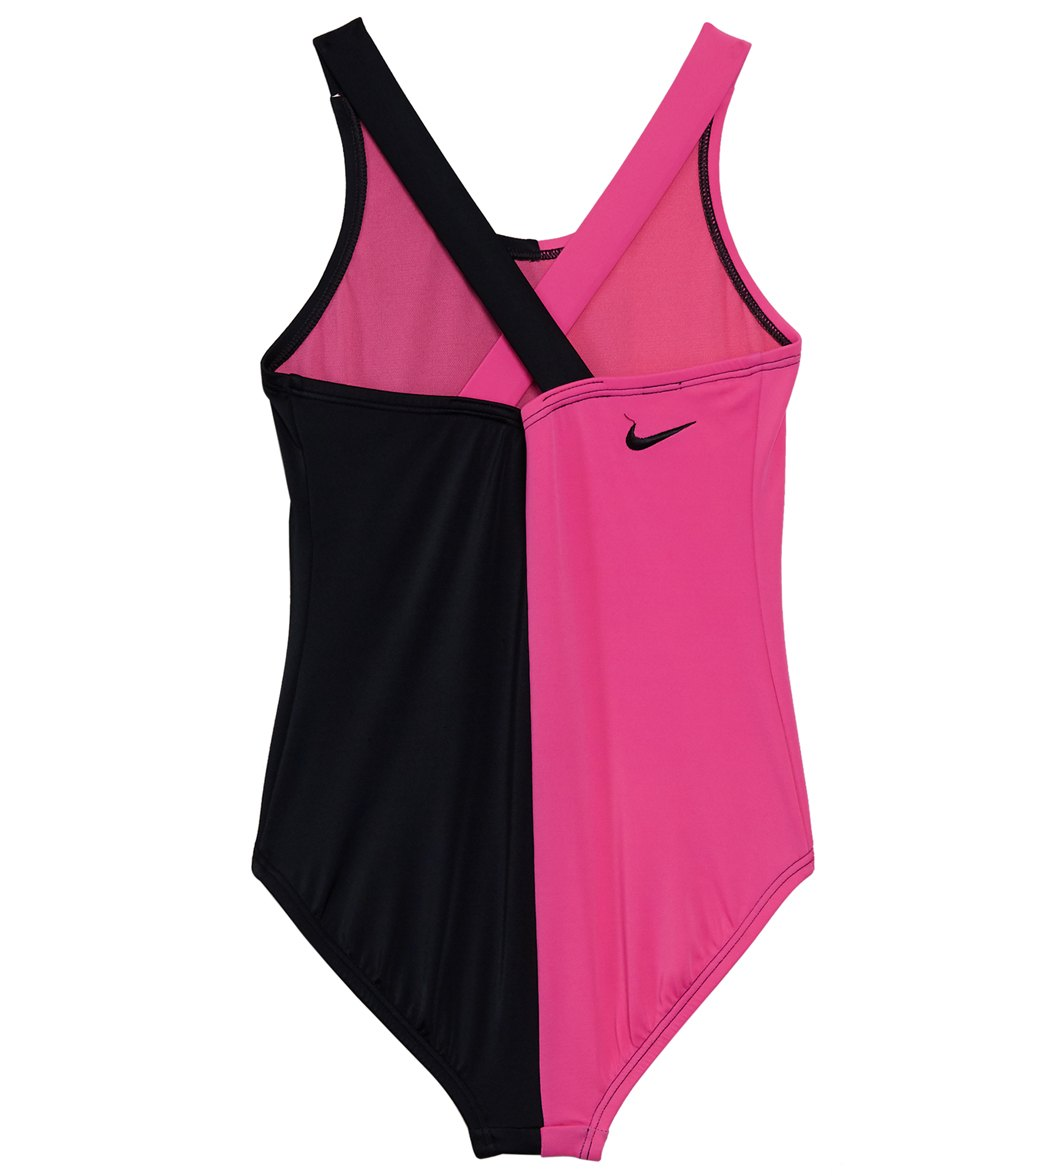 114311a3b94d7 Nike Girls' Rift One Piece Crossback Swimsuit (Big Kid) at ...